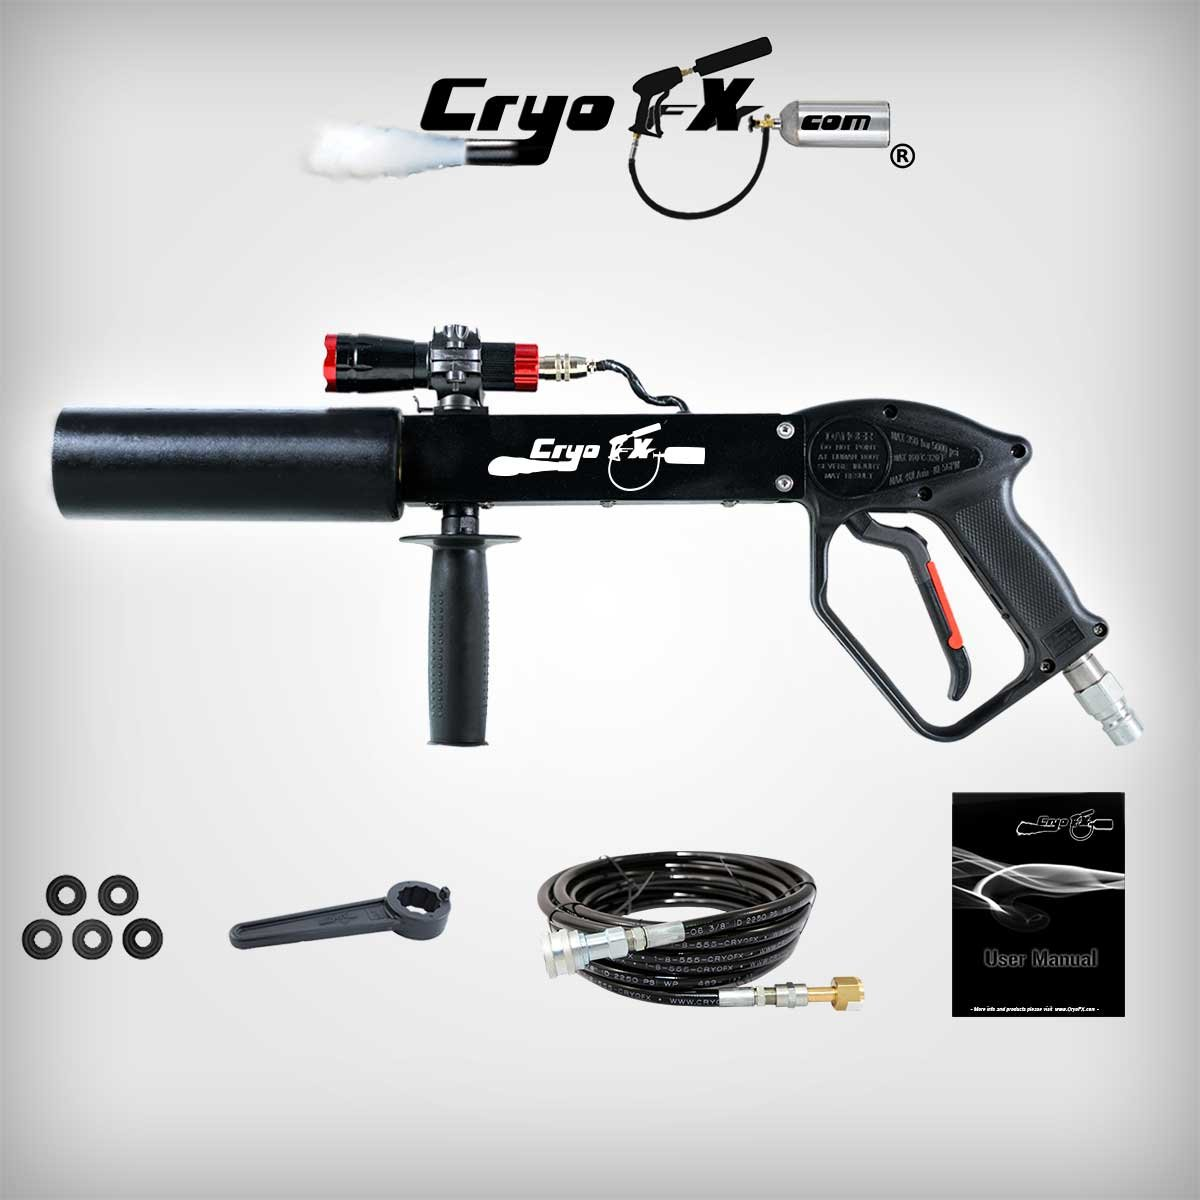 CryoFX Cryo Blaster - Handheld CO2 Blaster Co2 Jet Special Effects CO2 Bazooka Cannon